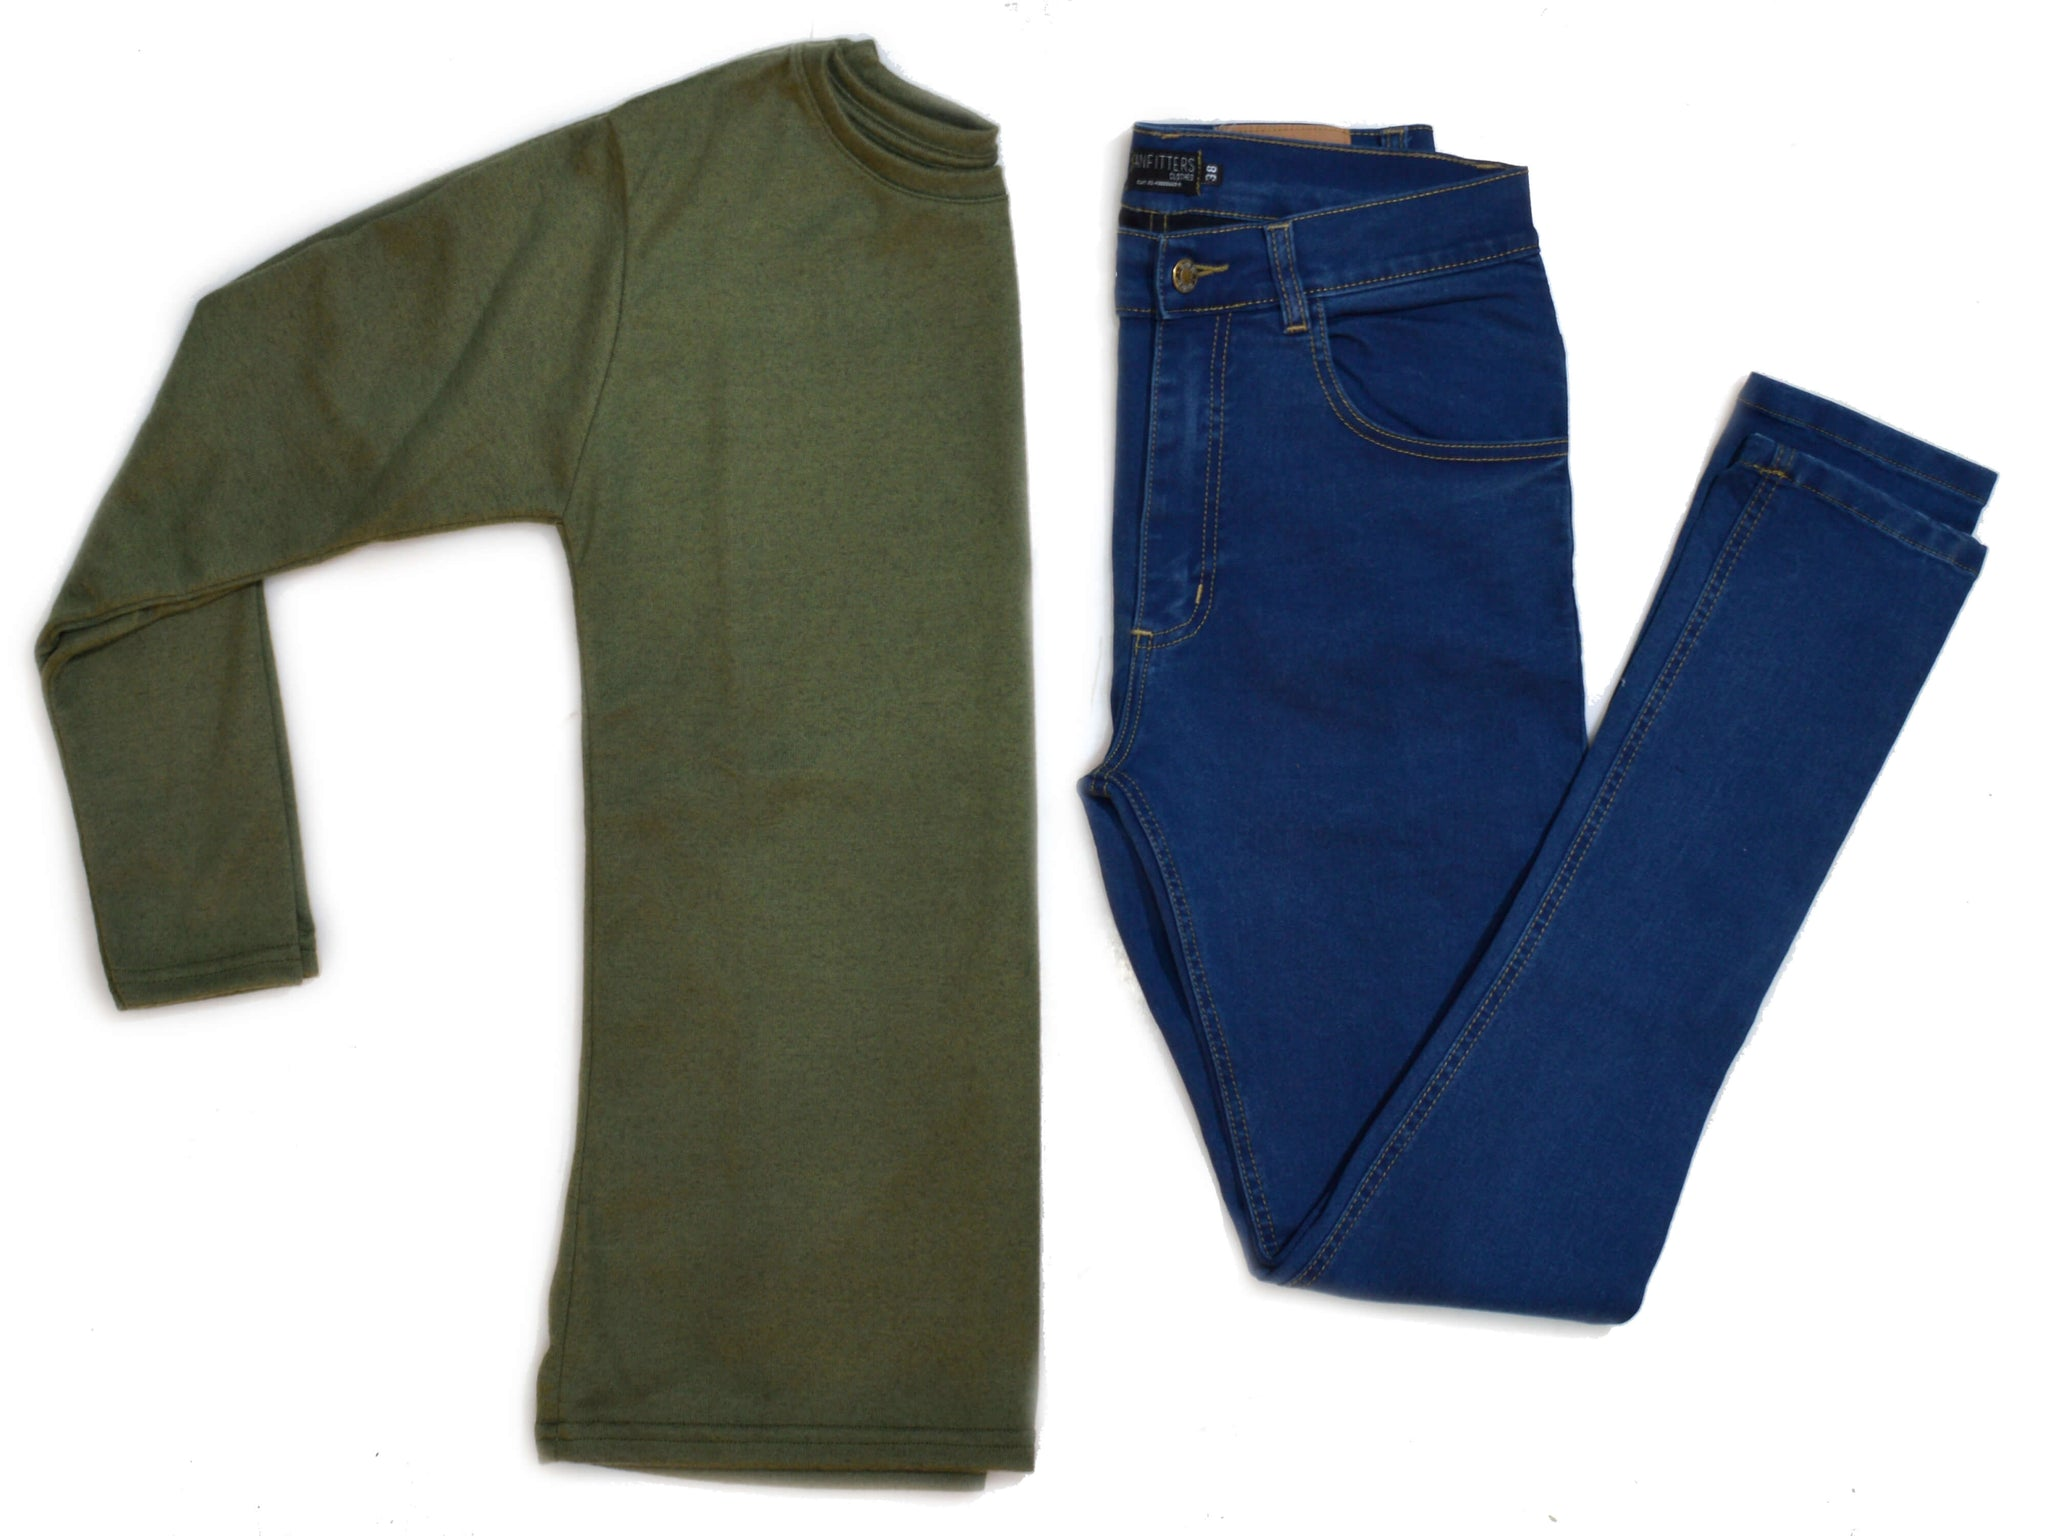 Outfit 433 - Jean Blue - Sweater Green